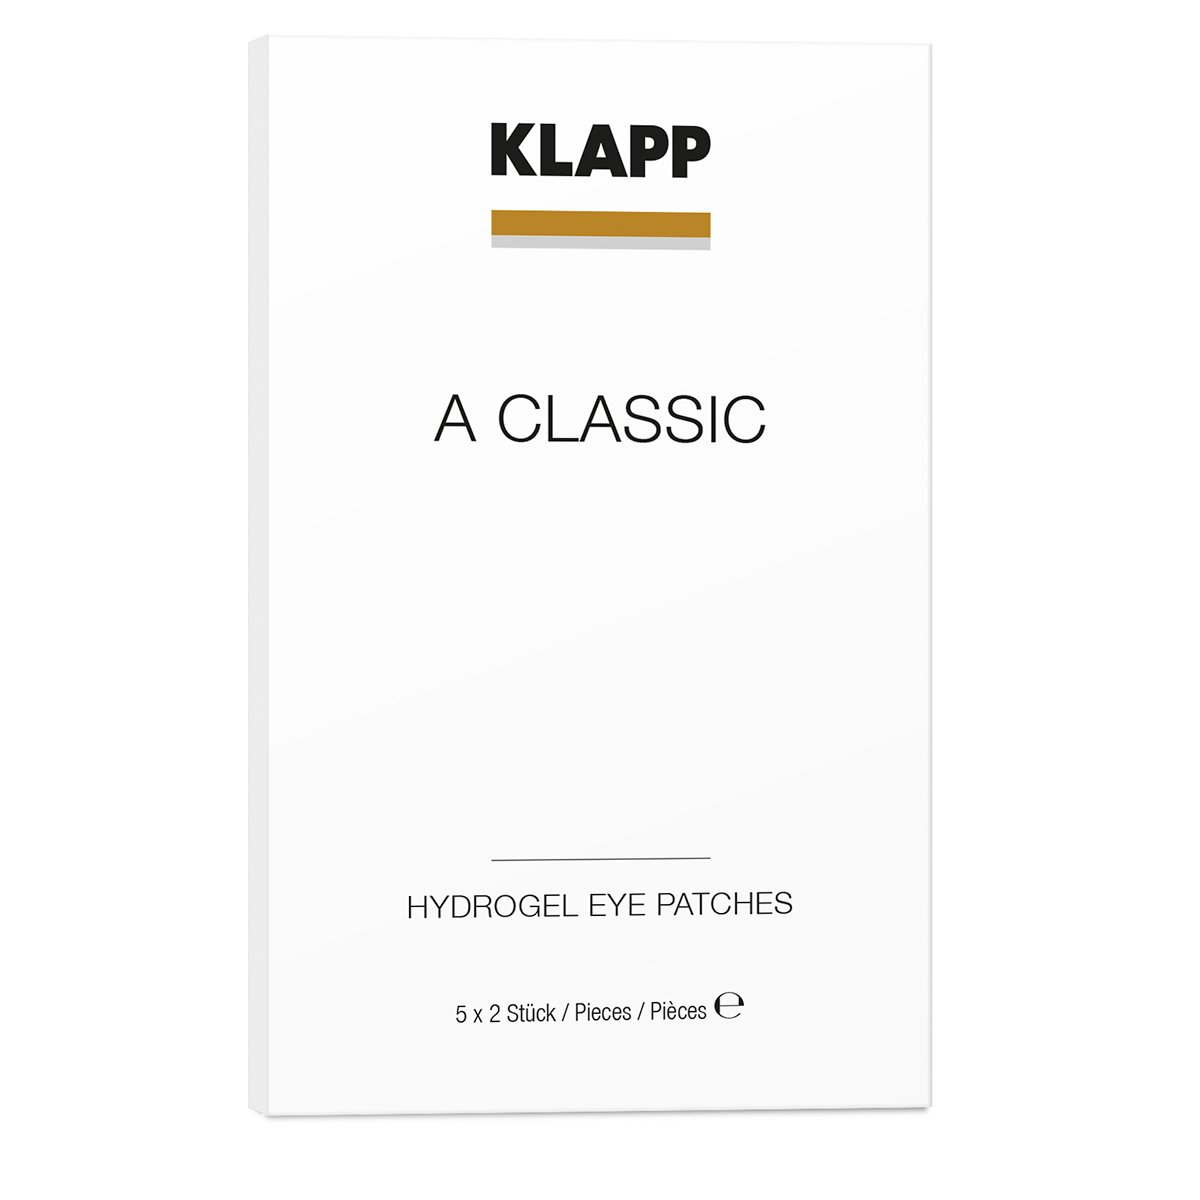 KLAPP A CLASSIC HYDROGEL EYE PATCHES 5 x 2 pcs by KLAPP A CLASSIC 1808